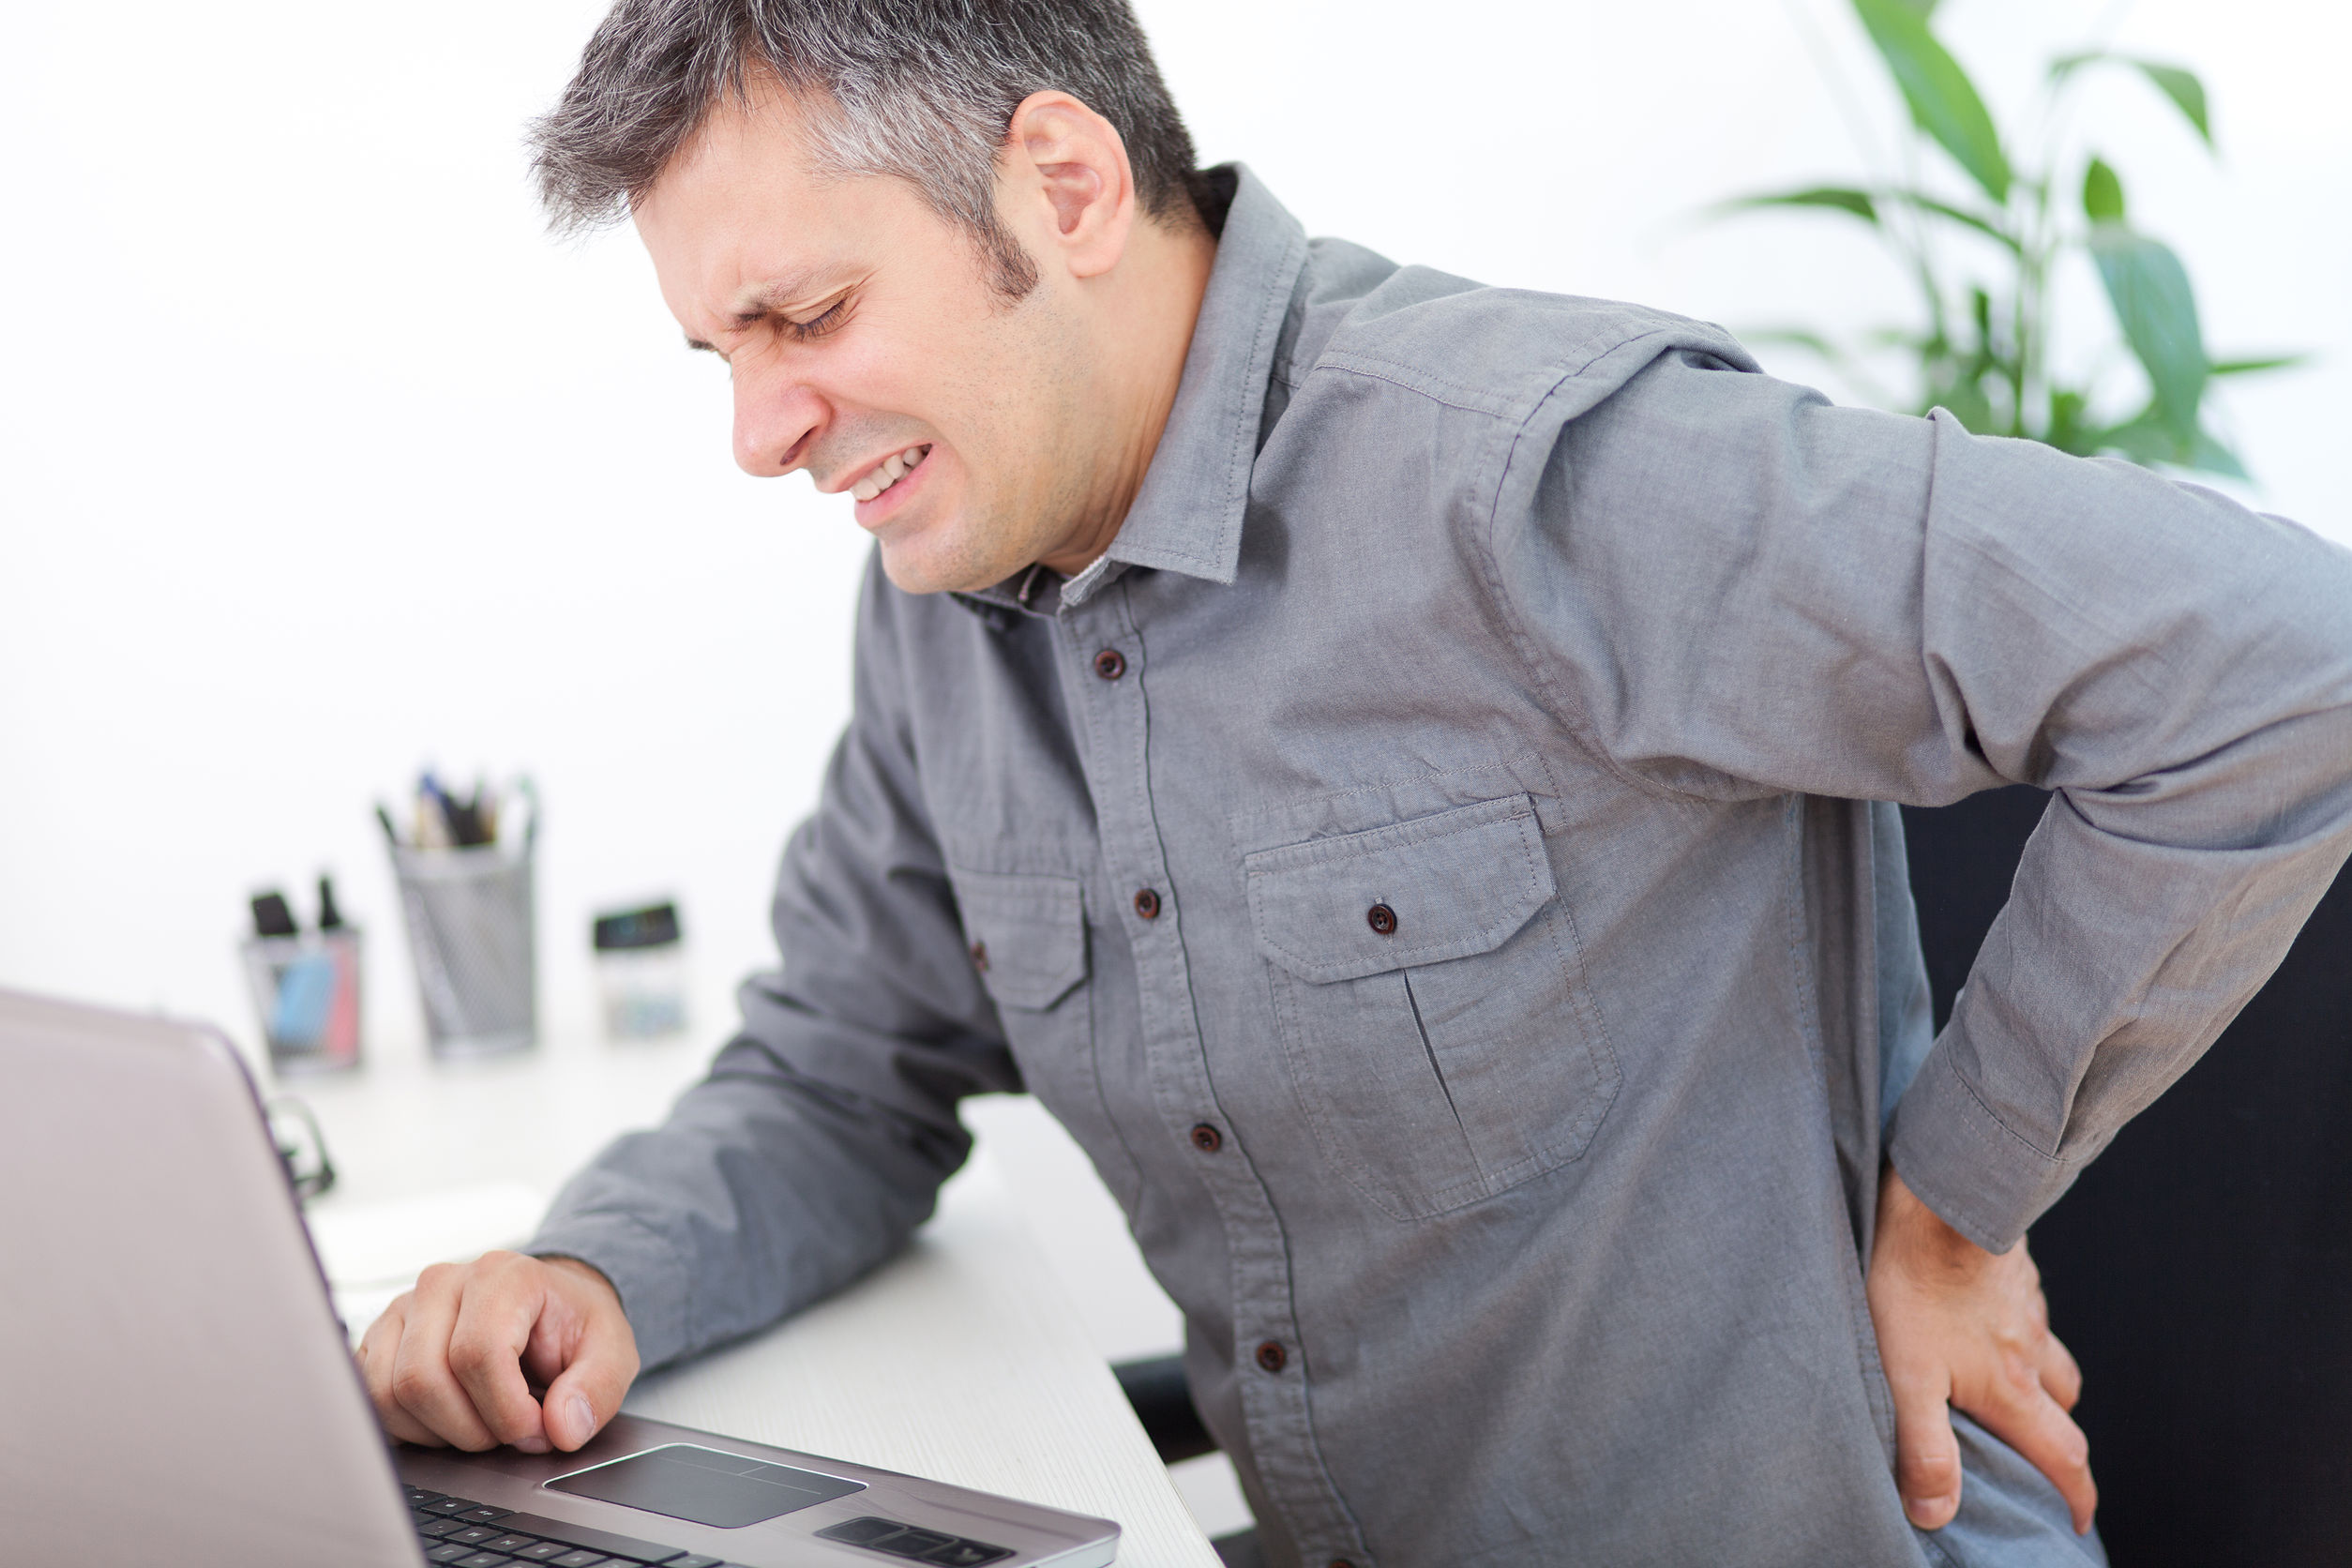 Man with back pain sitting at a desk